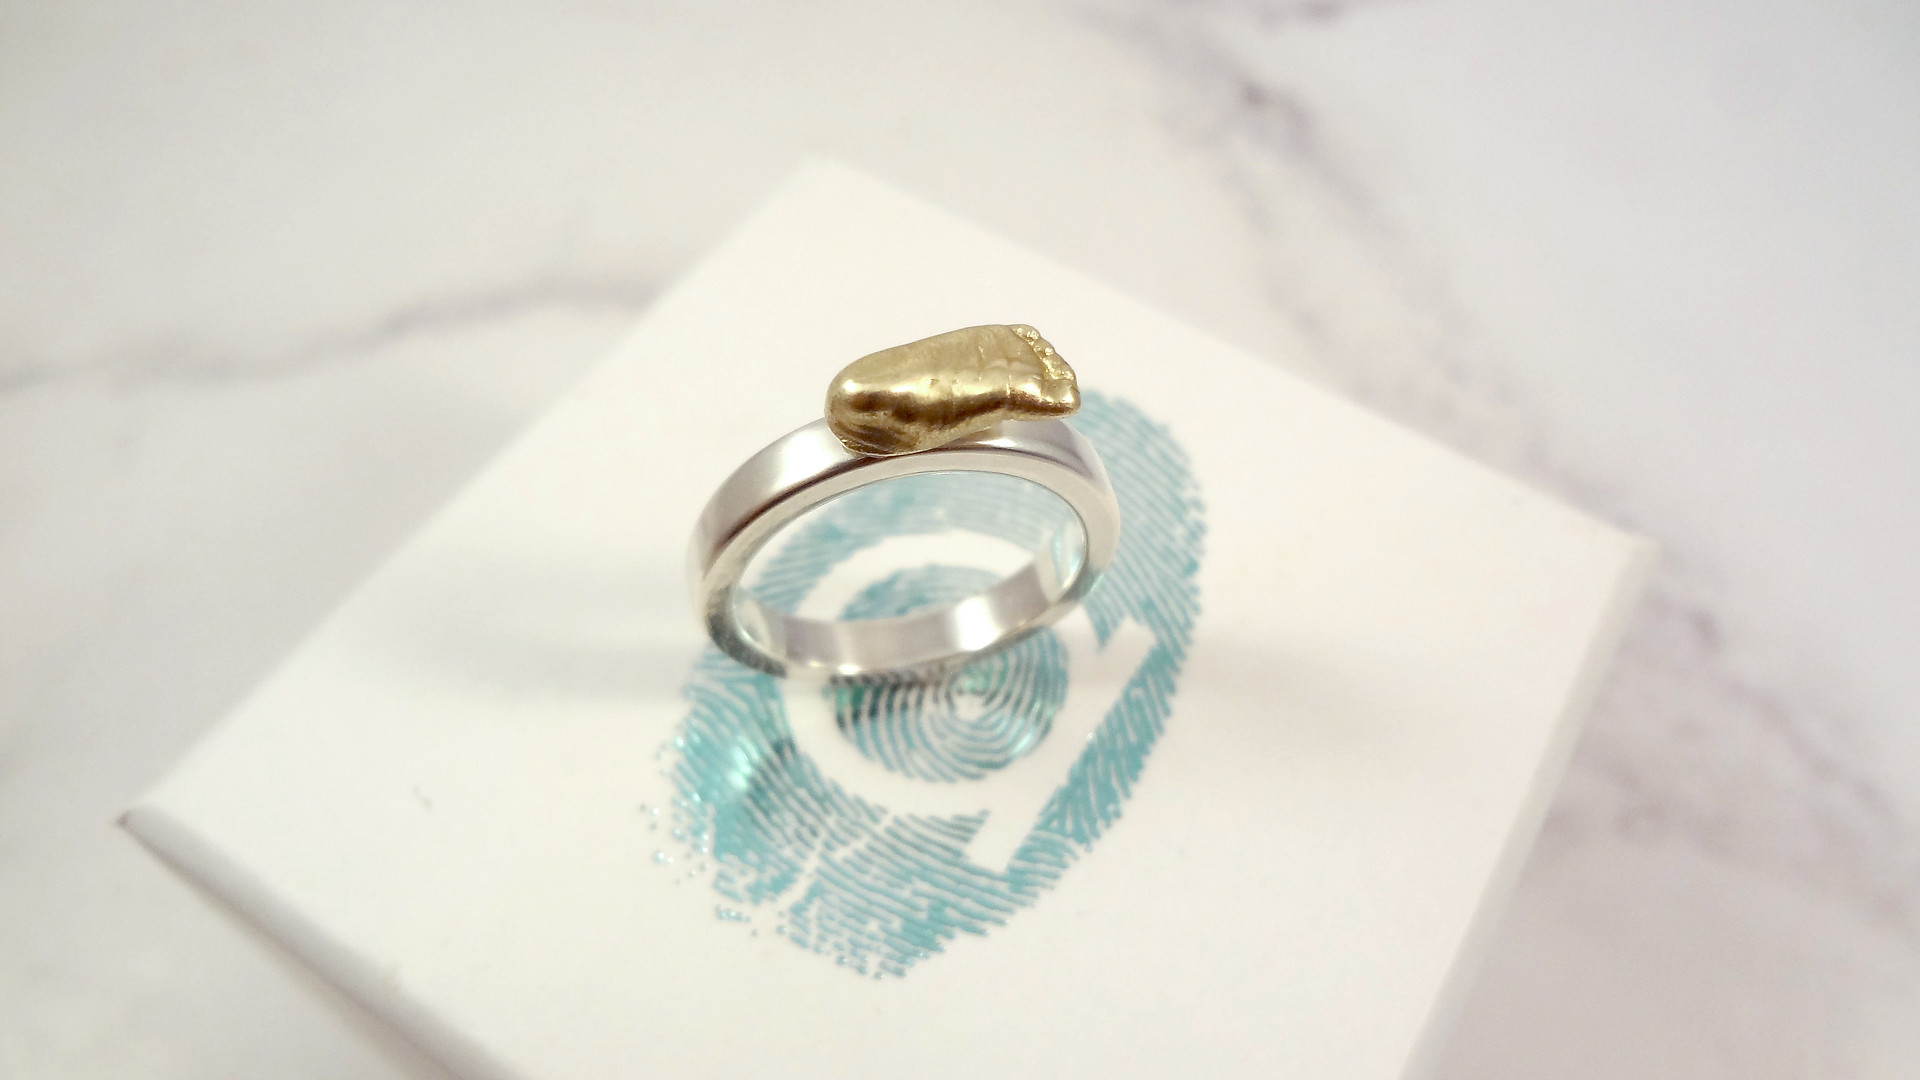 Miniature foot ring in gold & silver